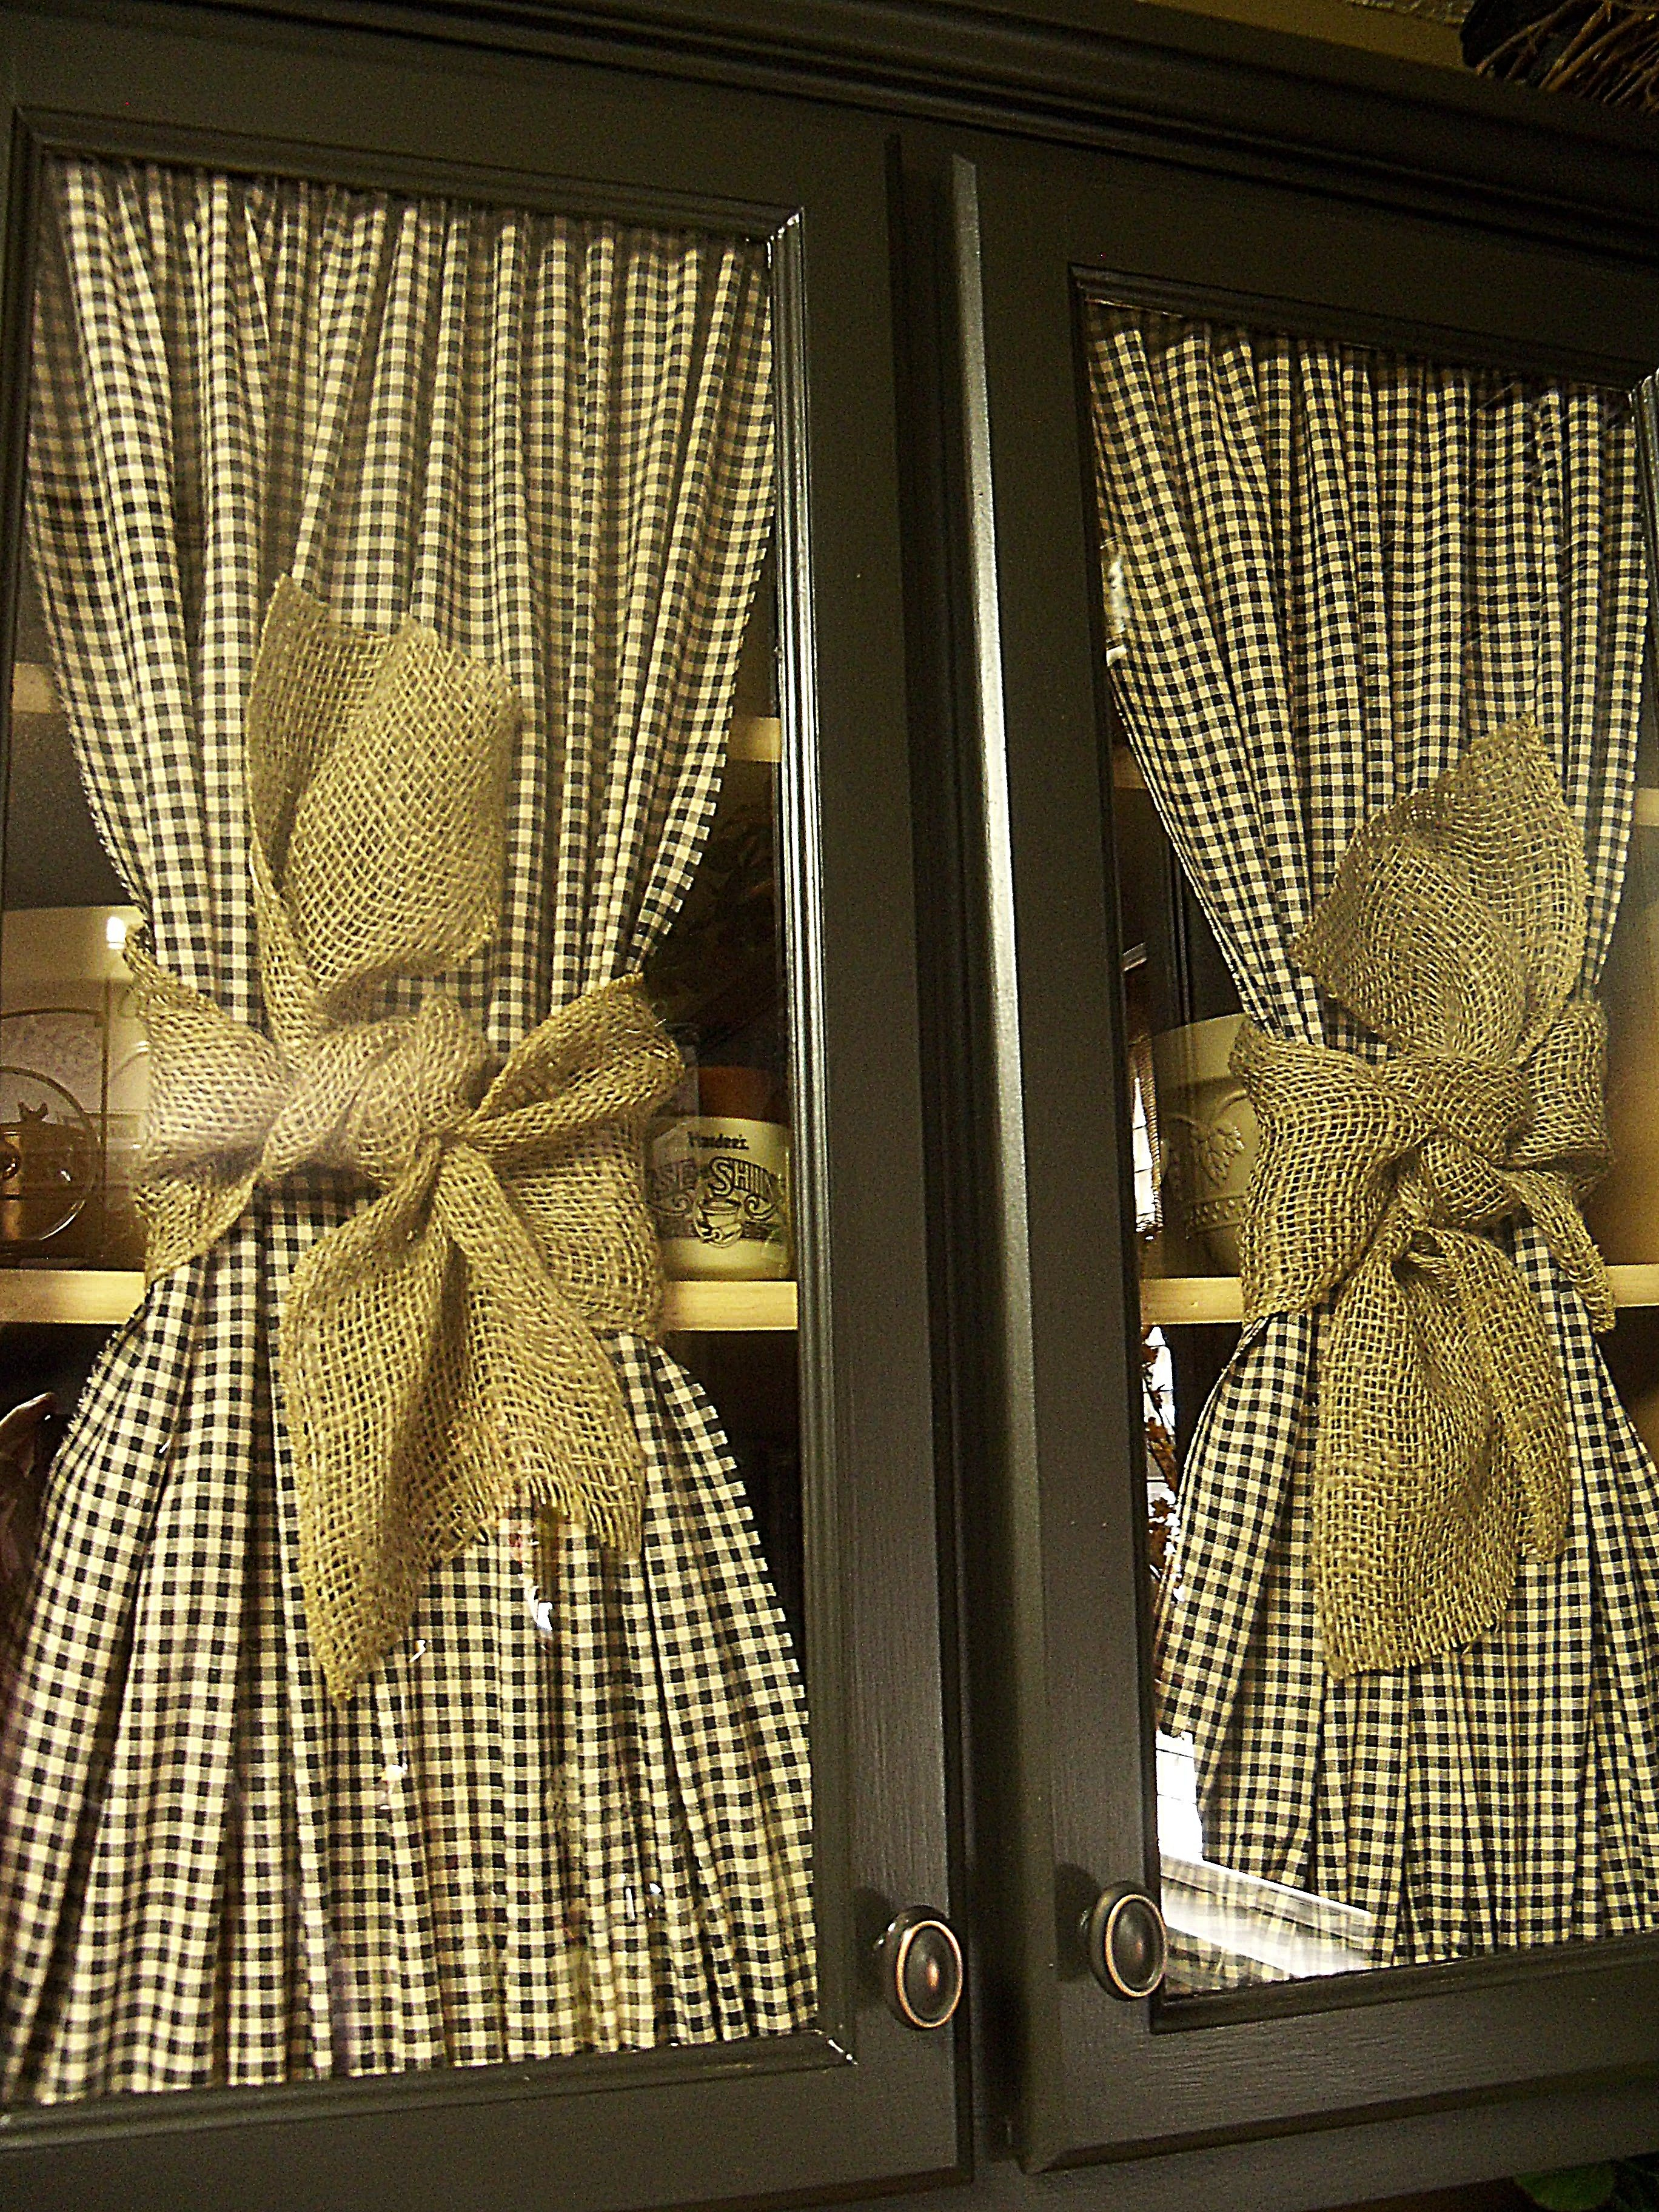 Country curtains logo - Gingham Checked Curtains Tied With Burlap For French Doors Or A Window Cabinet Door With Glass This Is A Great Option For A Seasonal Change